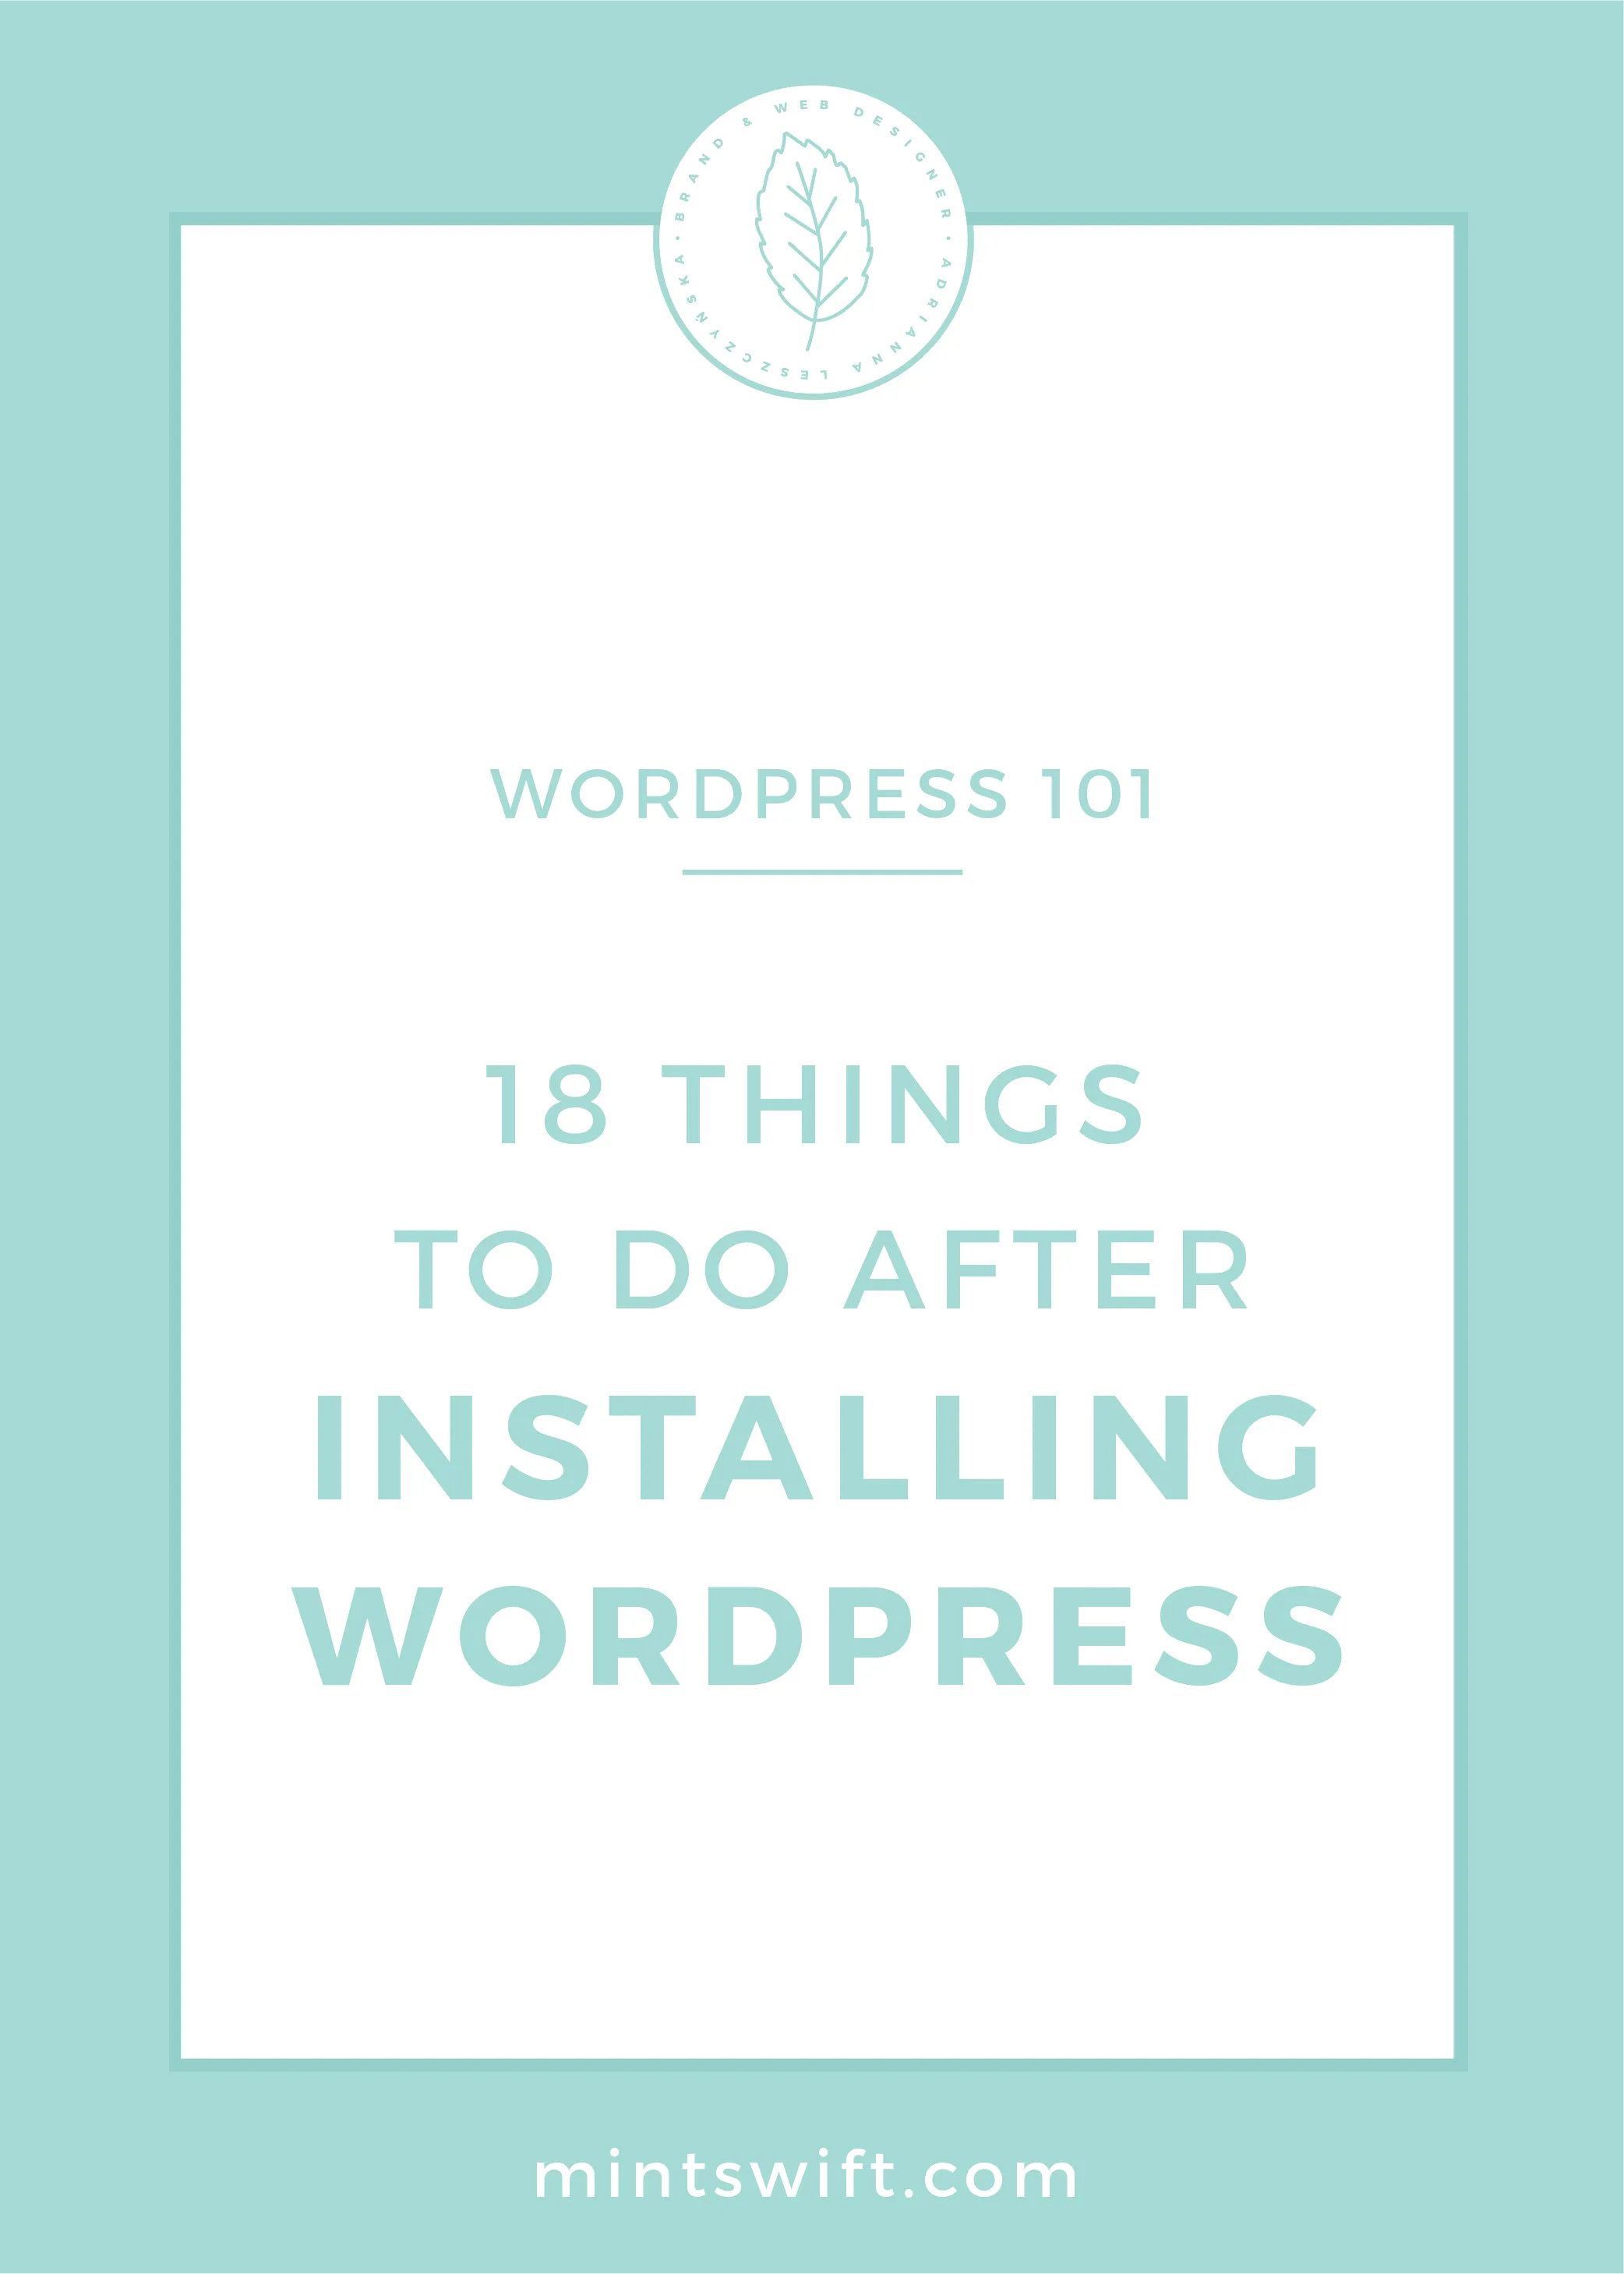 18 Things to Do After Installing WordPress by MintSwift